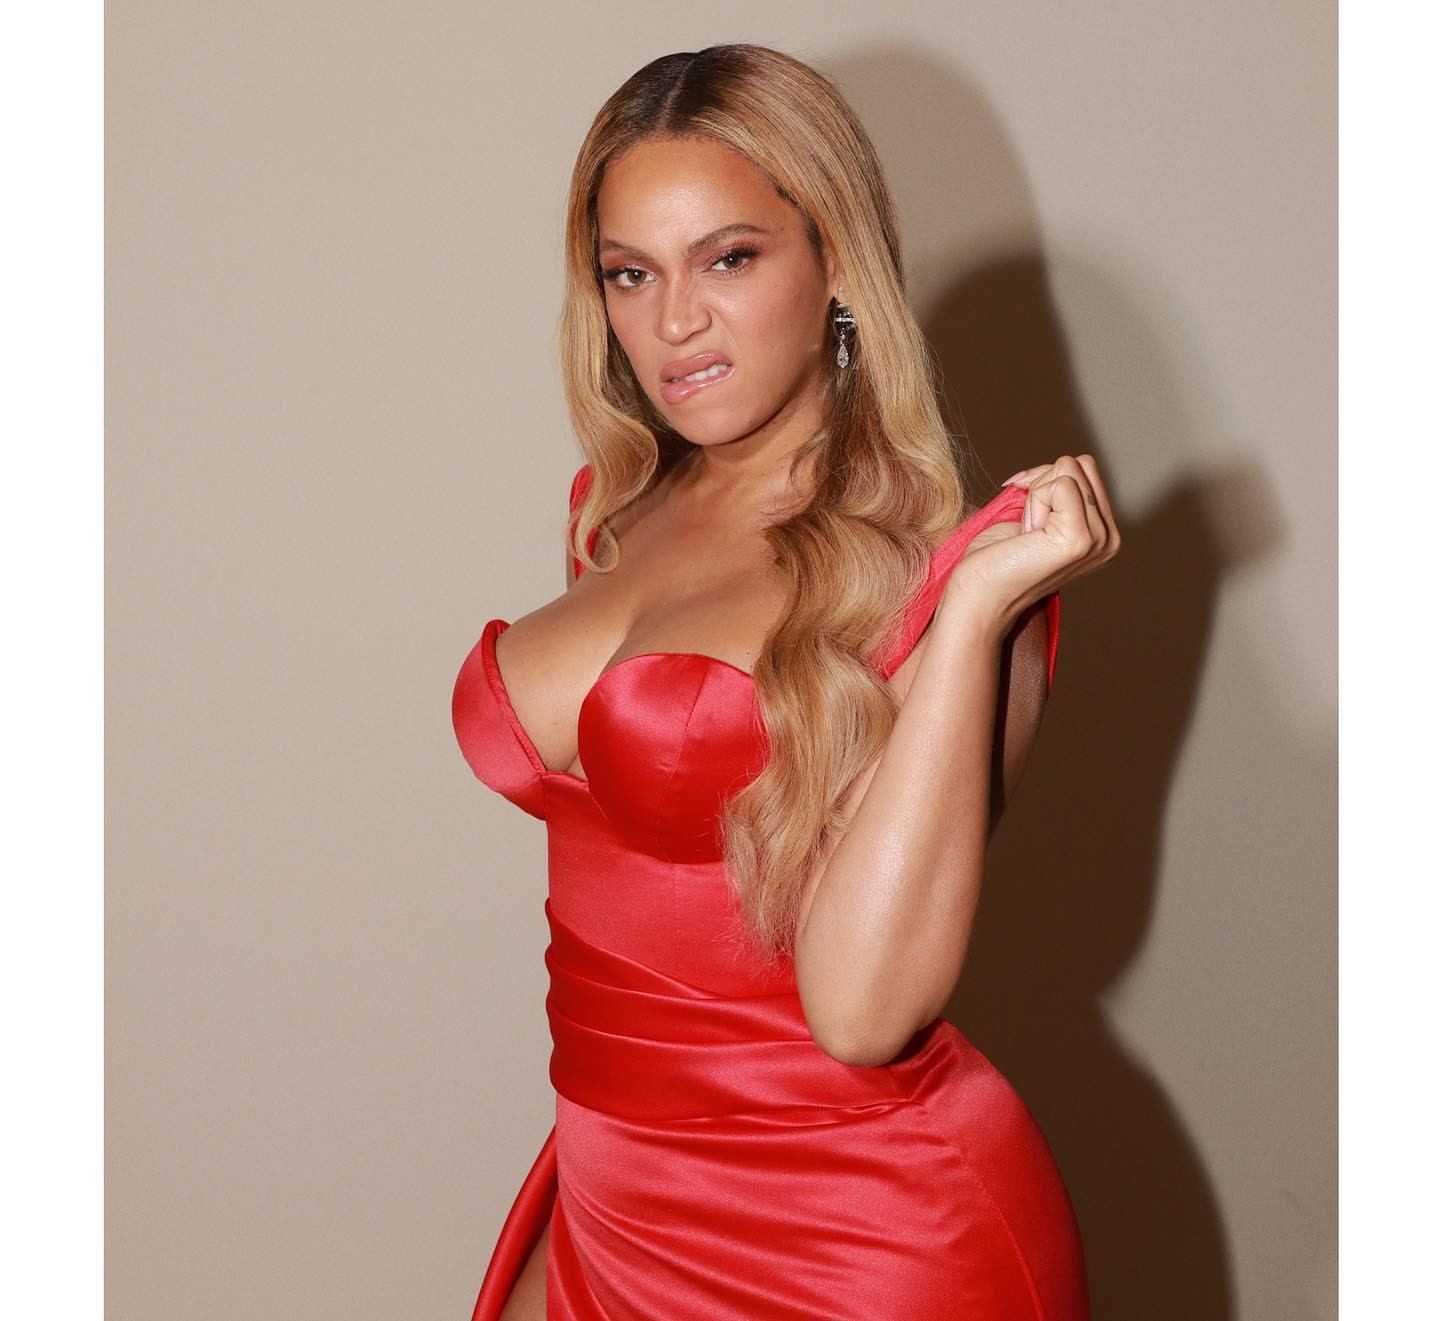 Beyonce Nude In A Hammock (PHOTOS) - T.V.S.T.